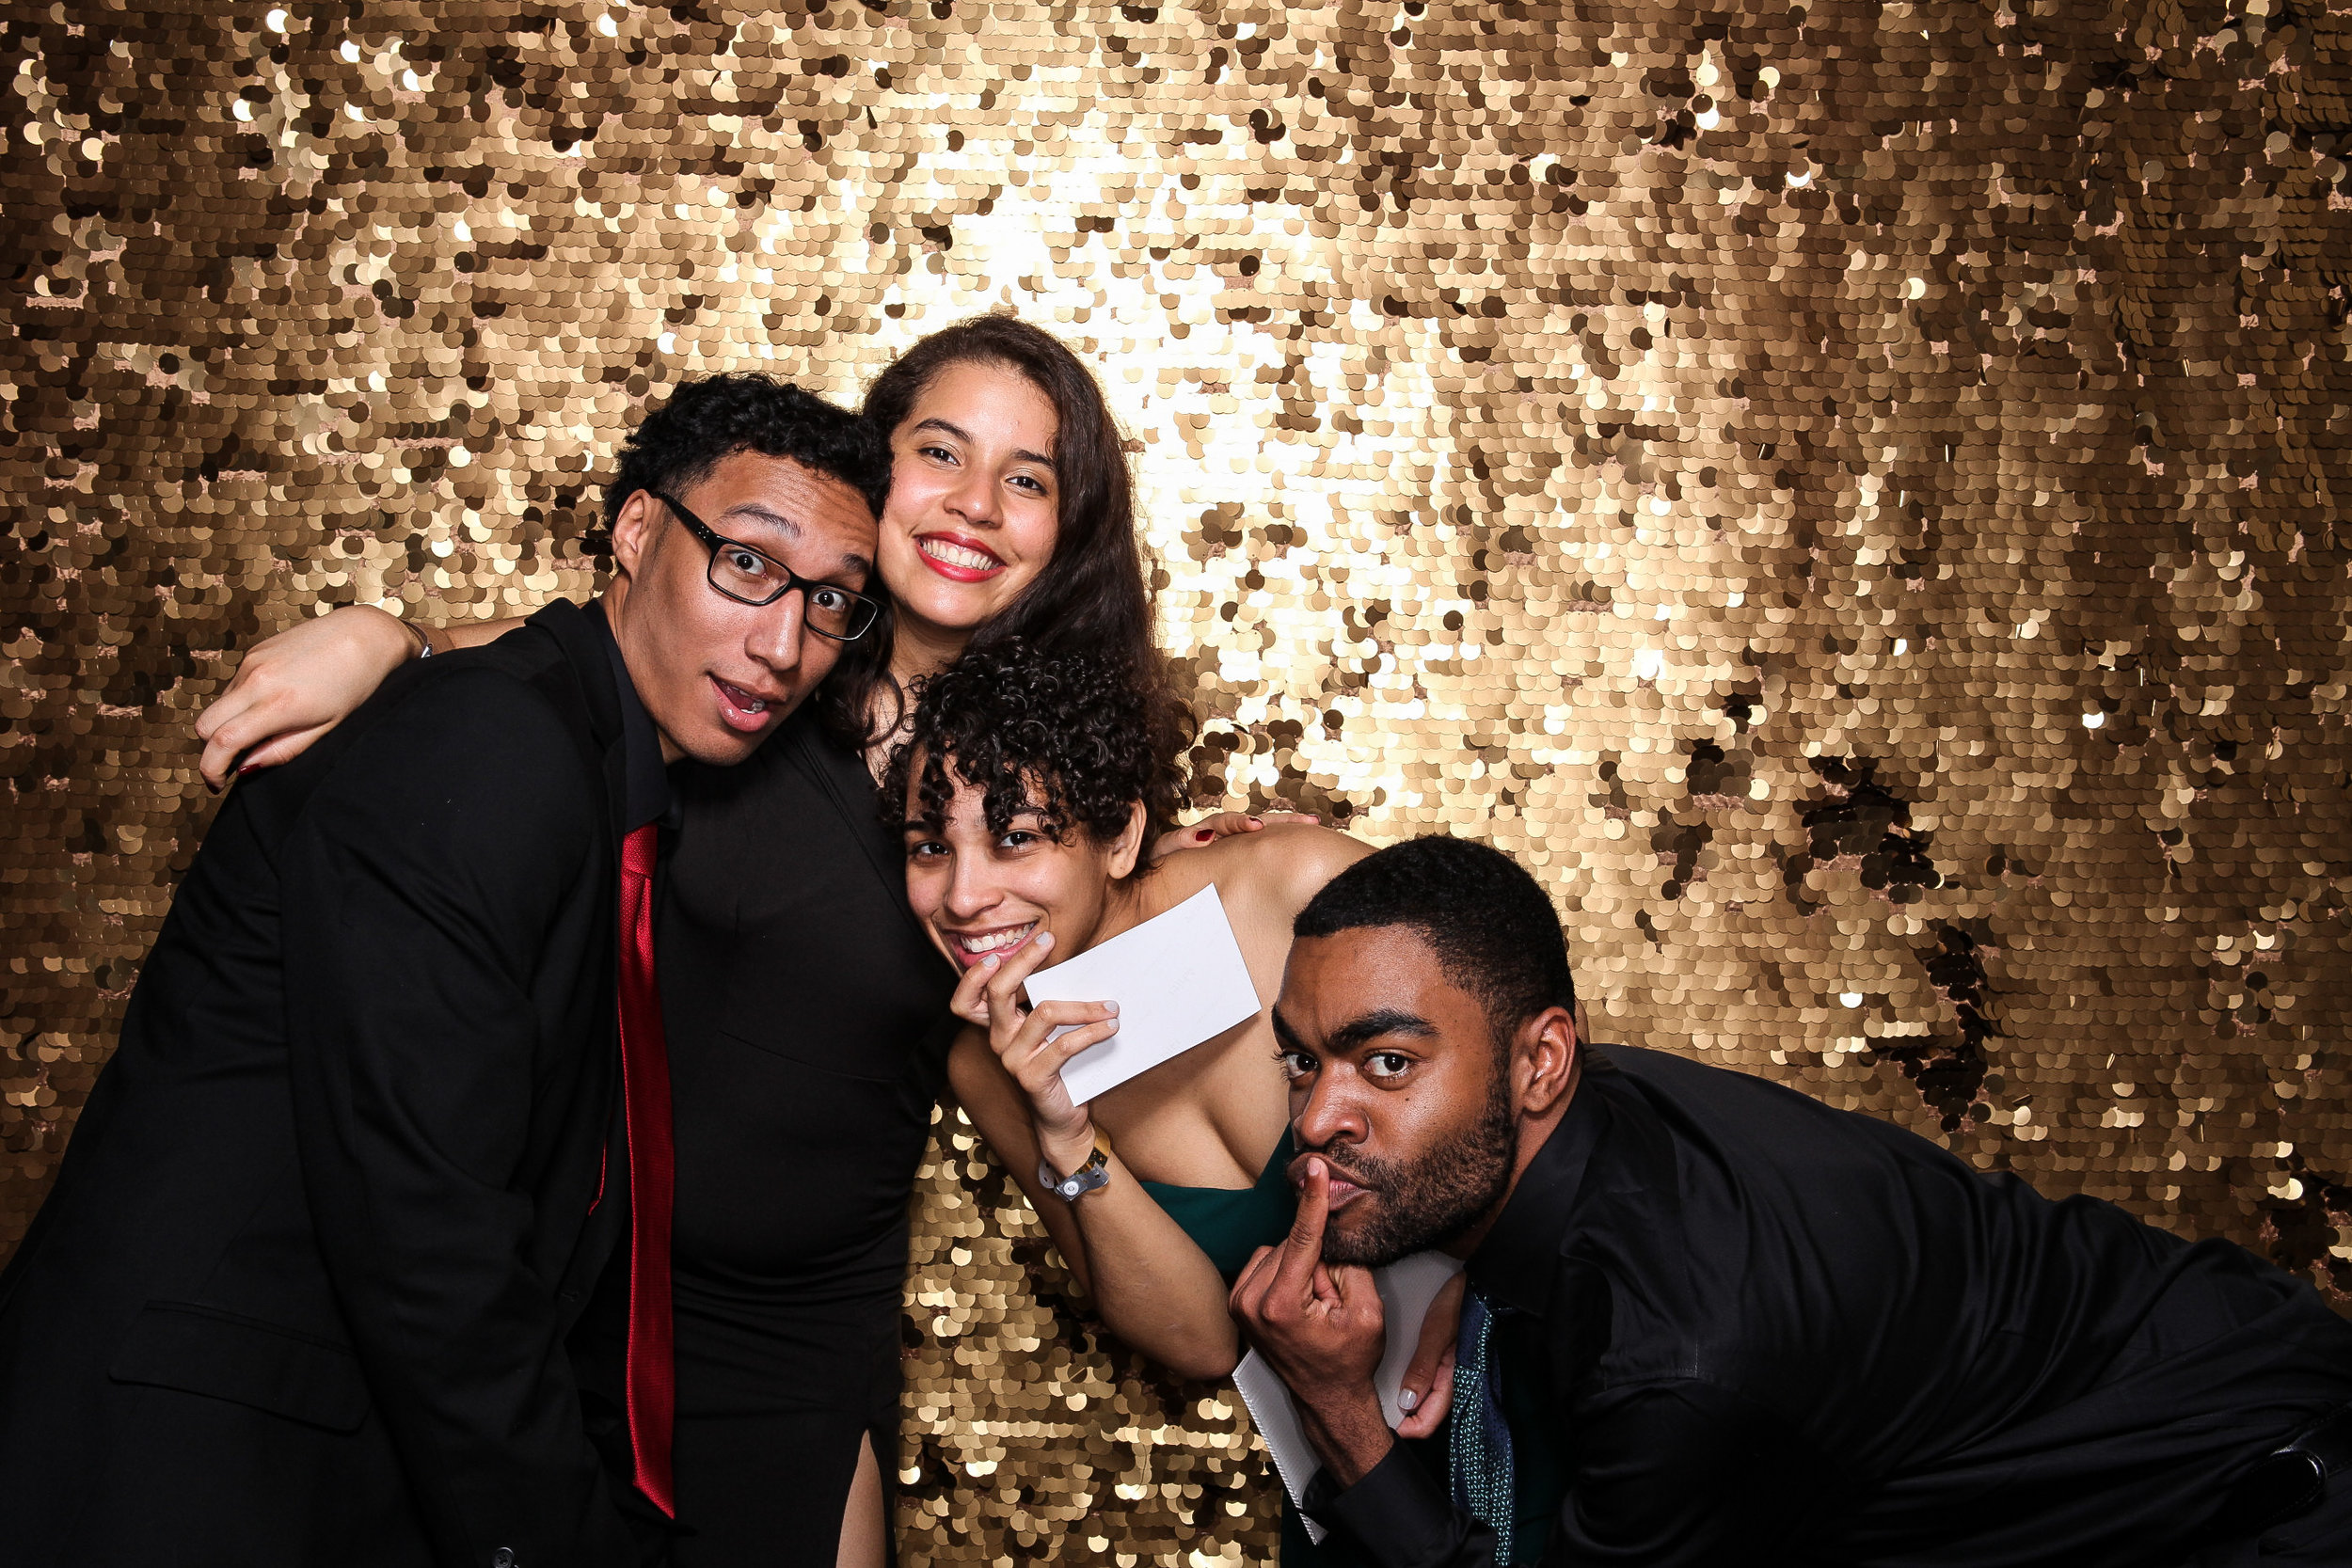 20190503_Adelphi_Senior_Formal-303.jpg